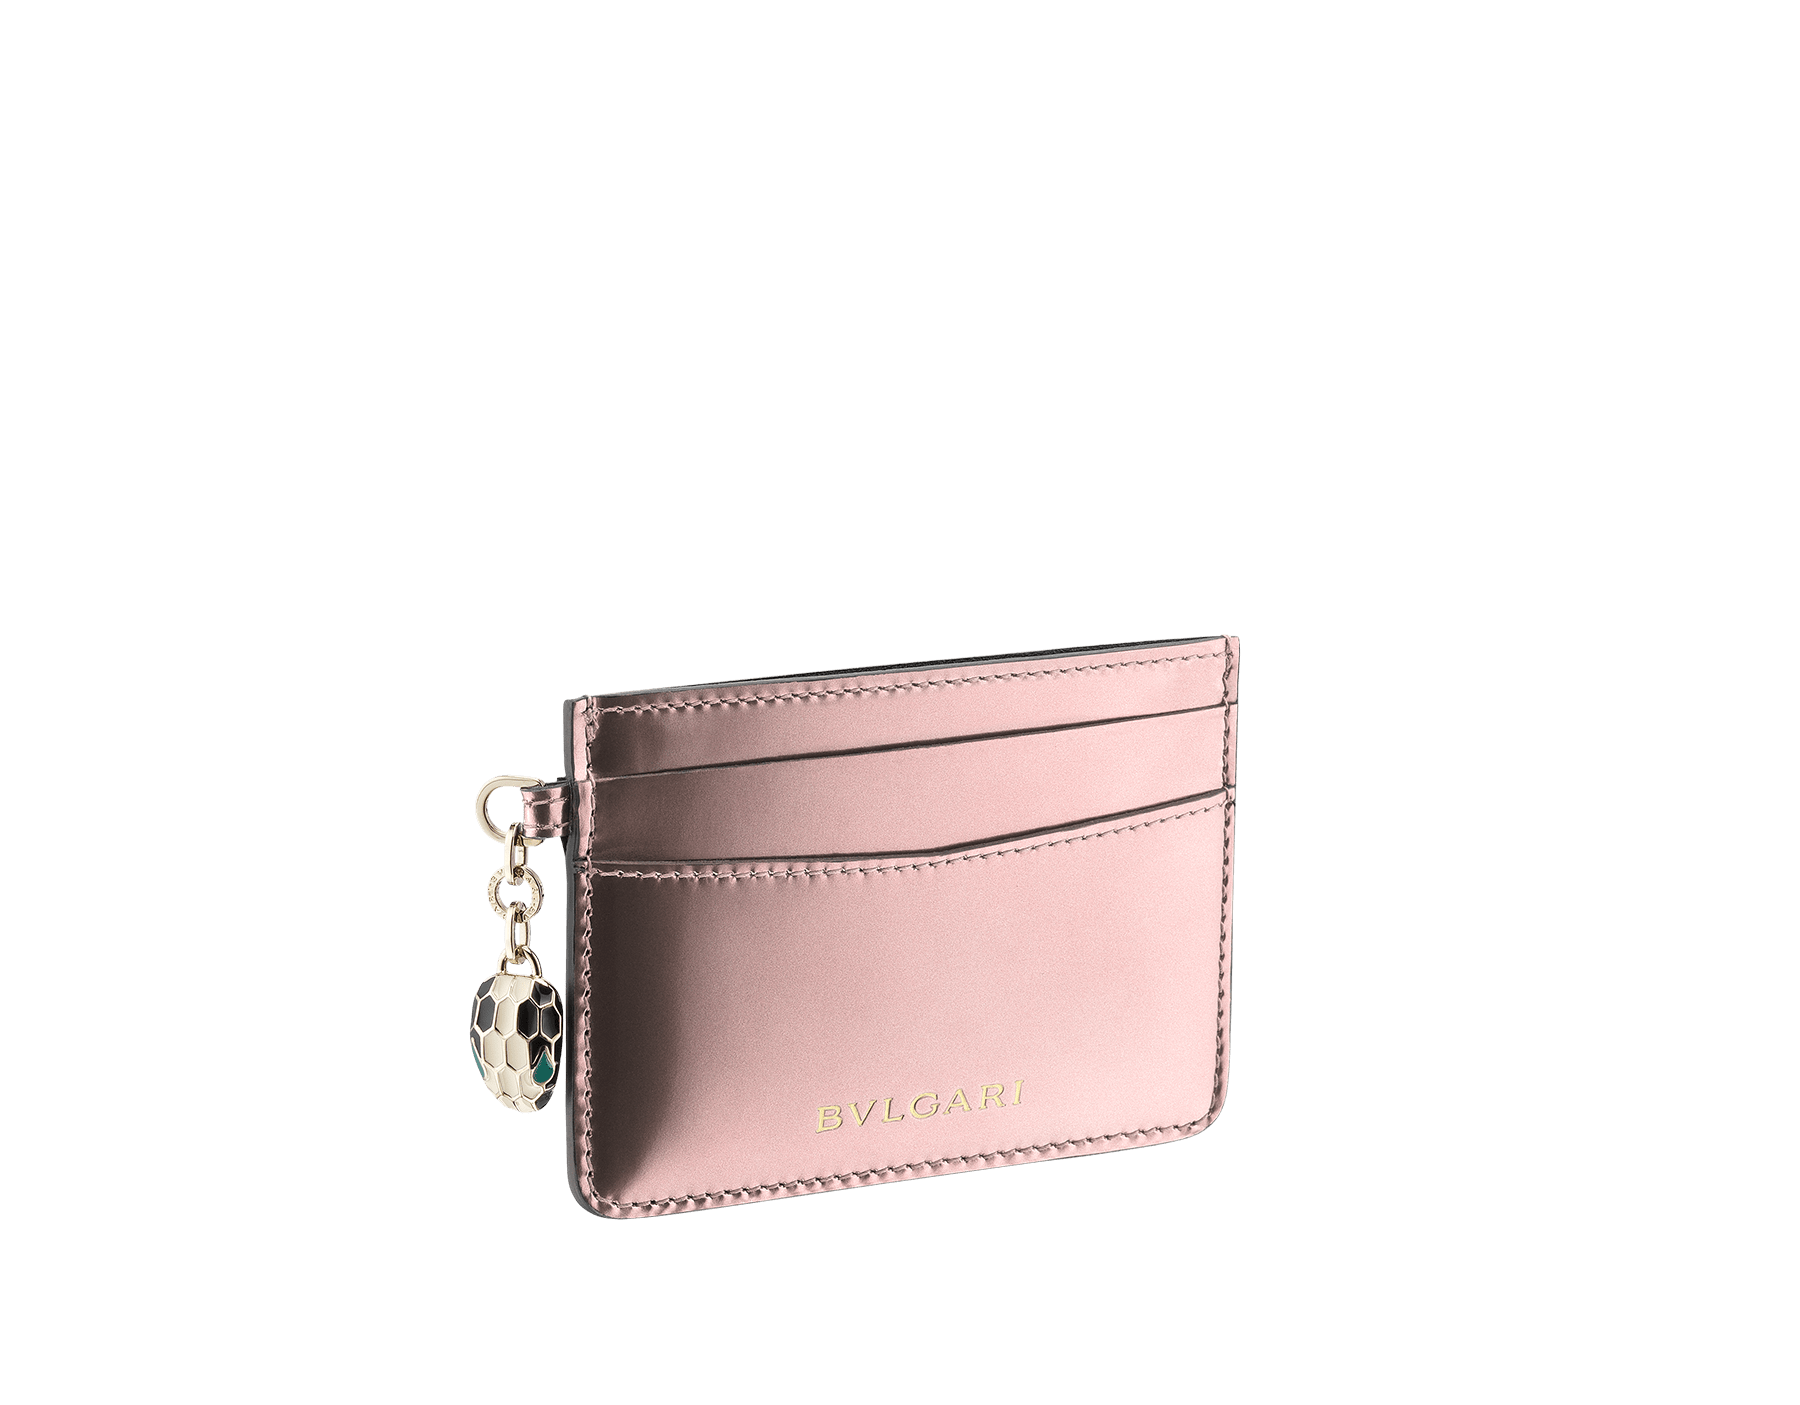 Credit card holder in rose quartz brushed metallic calf leather and black calf leather lining. Serpenti charm in black and white enamel, with green enamel eyes and Bulgari logo. 285416 image 1